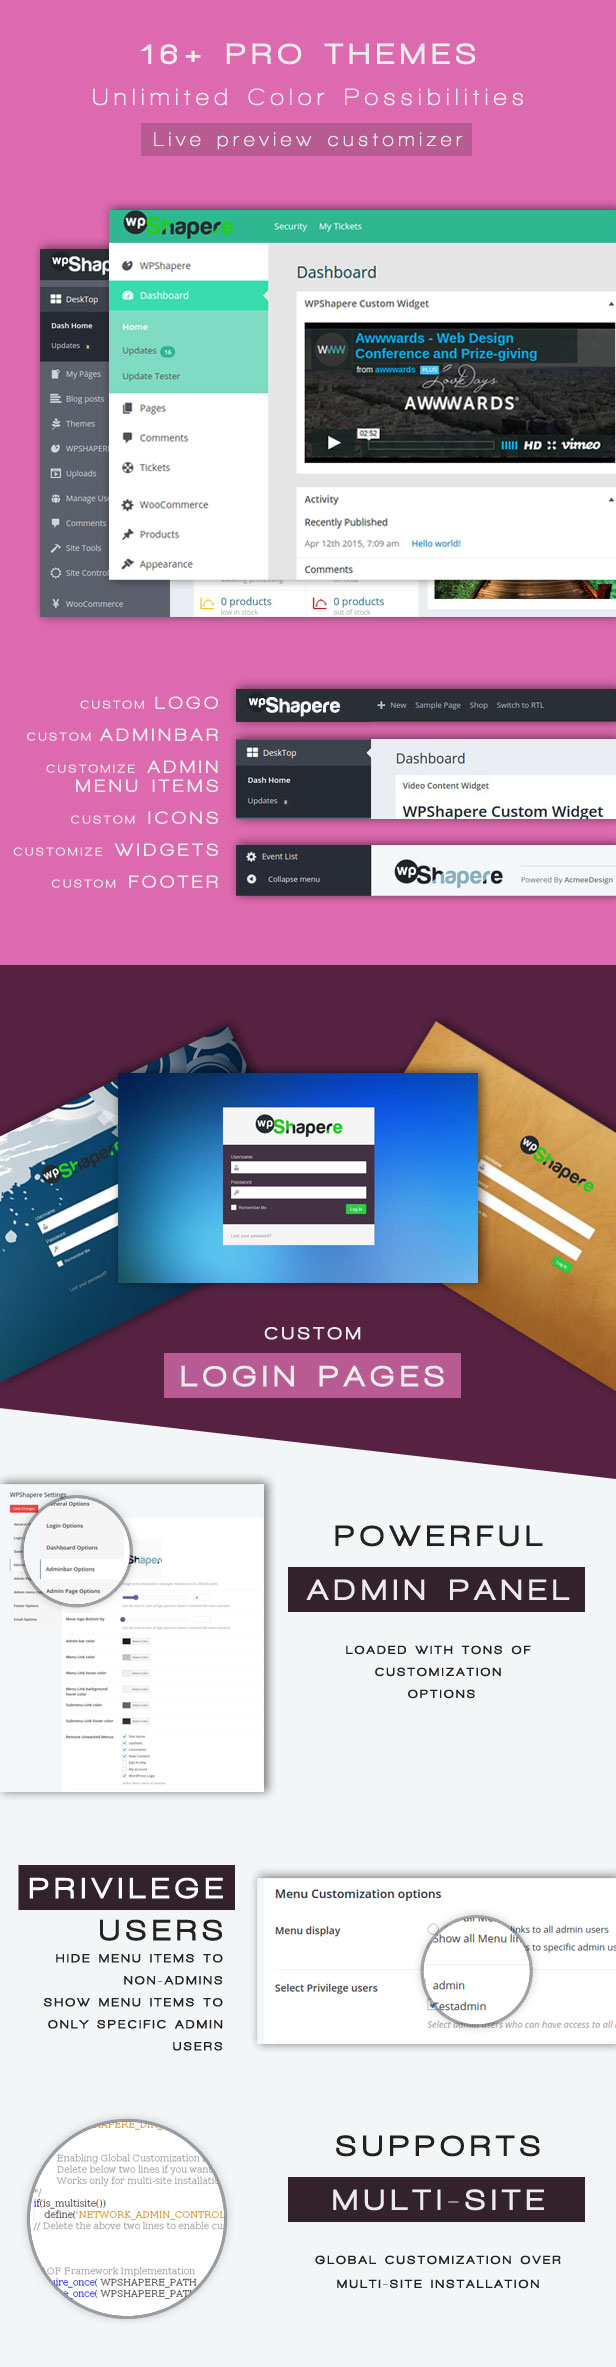 Wordpress Admin Theme WPShapere5 - Wordpress Admin Theme - WPShapere